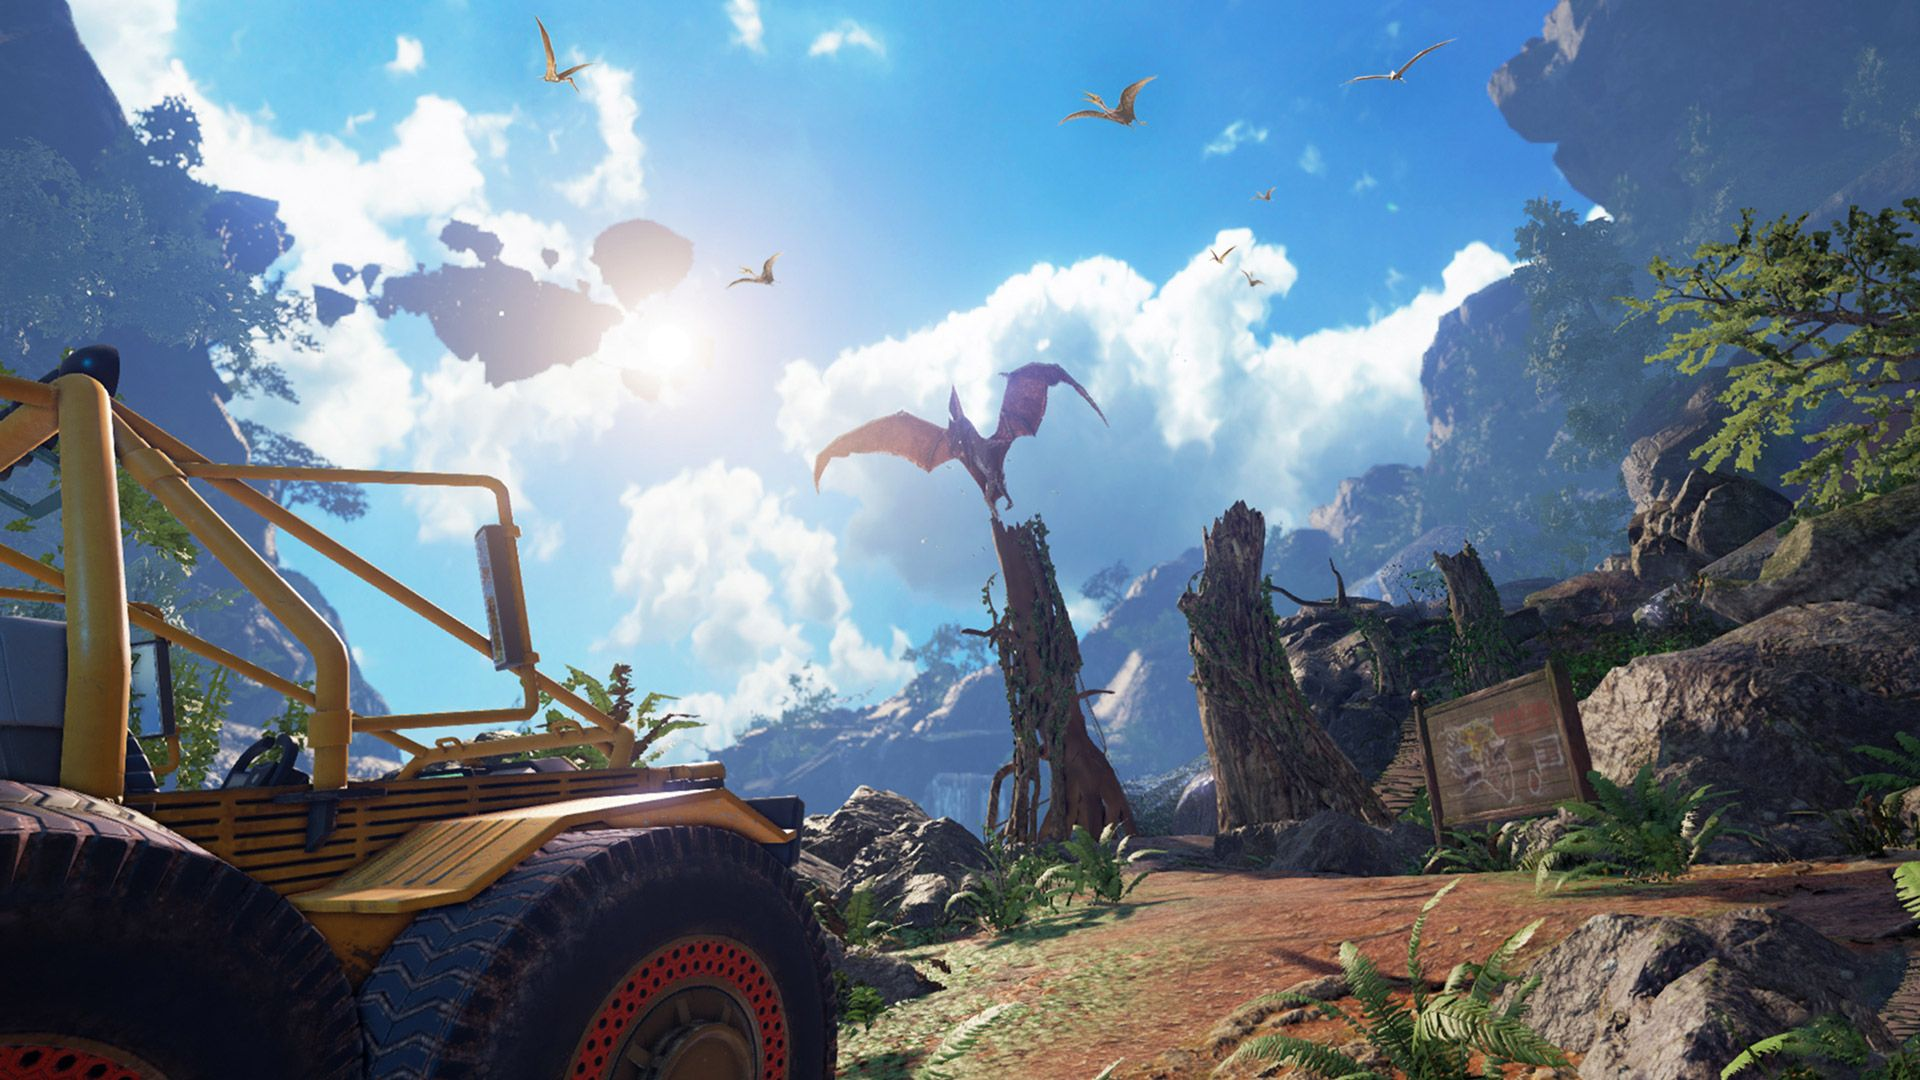 'ARK Park' Launches on PlayStation VR in December 2017